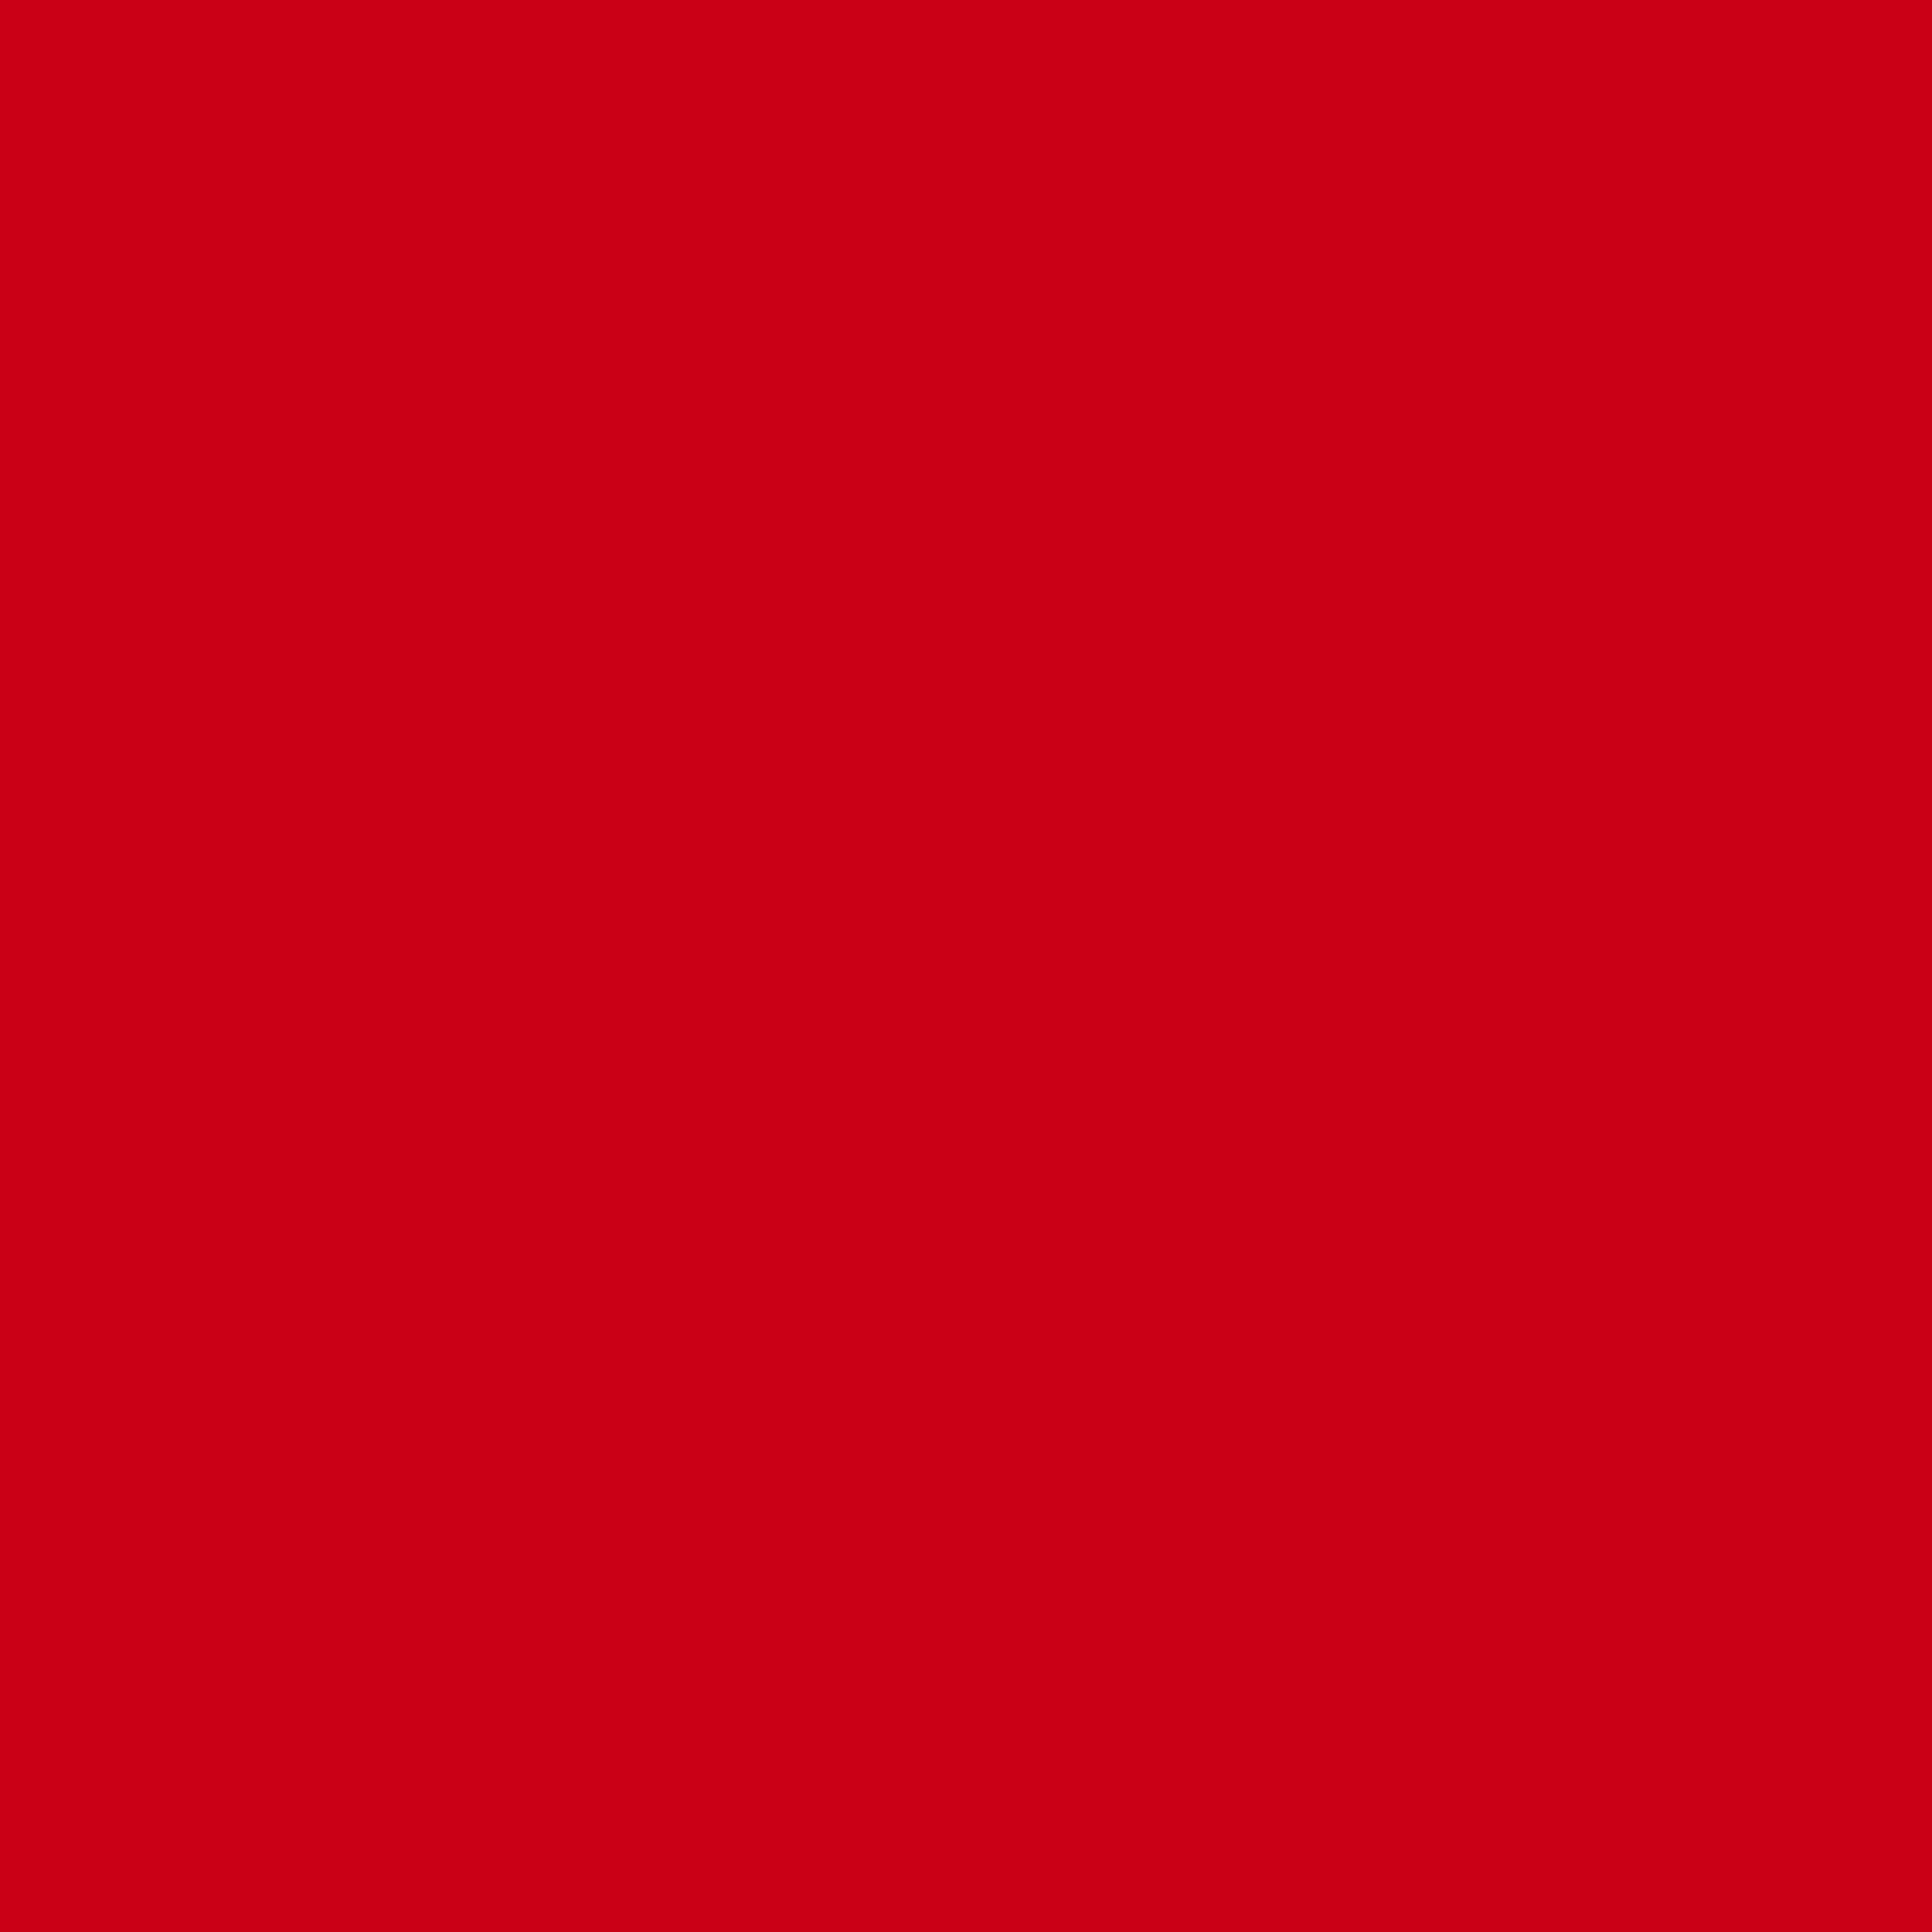 2732x2732 Harvard Crimson Solid Color Background